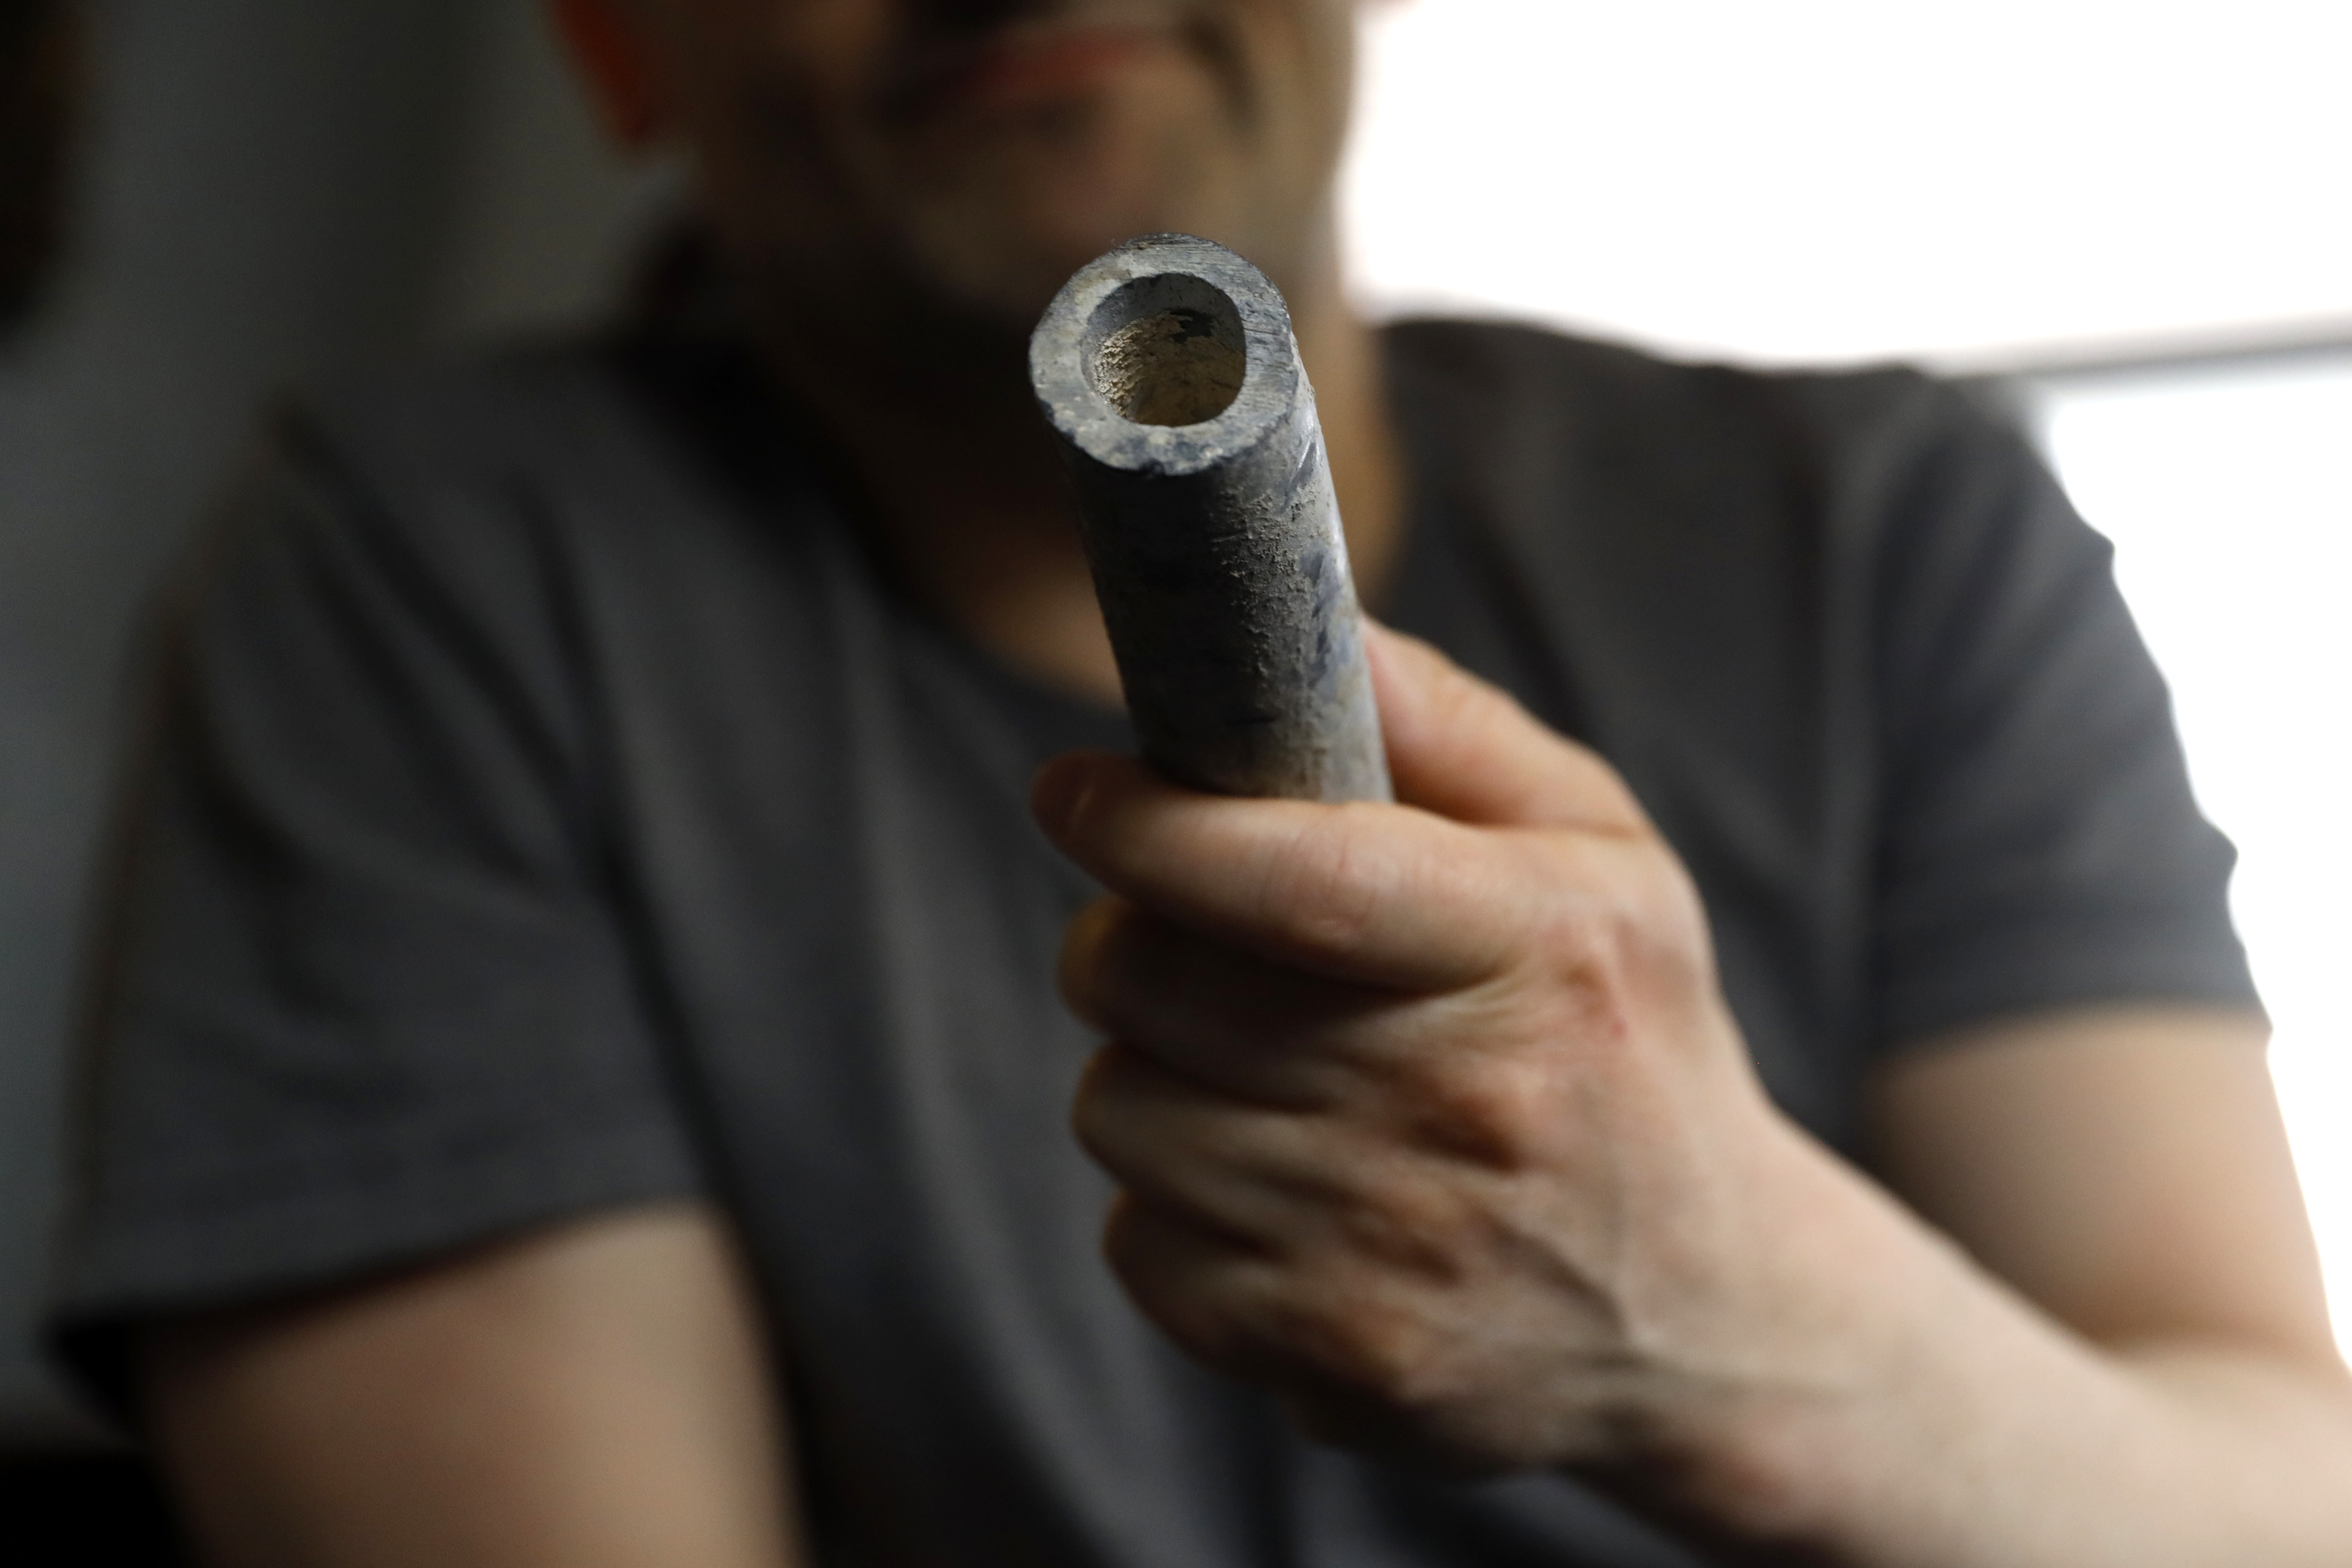 Troy Hernandez, an environmental justice activist with Pilsen Environmental Rights and Reform Organization shows a piece of lead pipe obtained from his residence during his home renovation, Friday, April 9, 2021 in Chicago's Pilsen neighborhood.